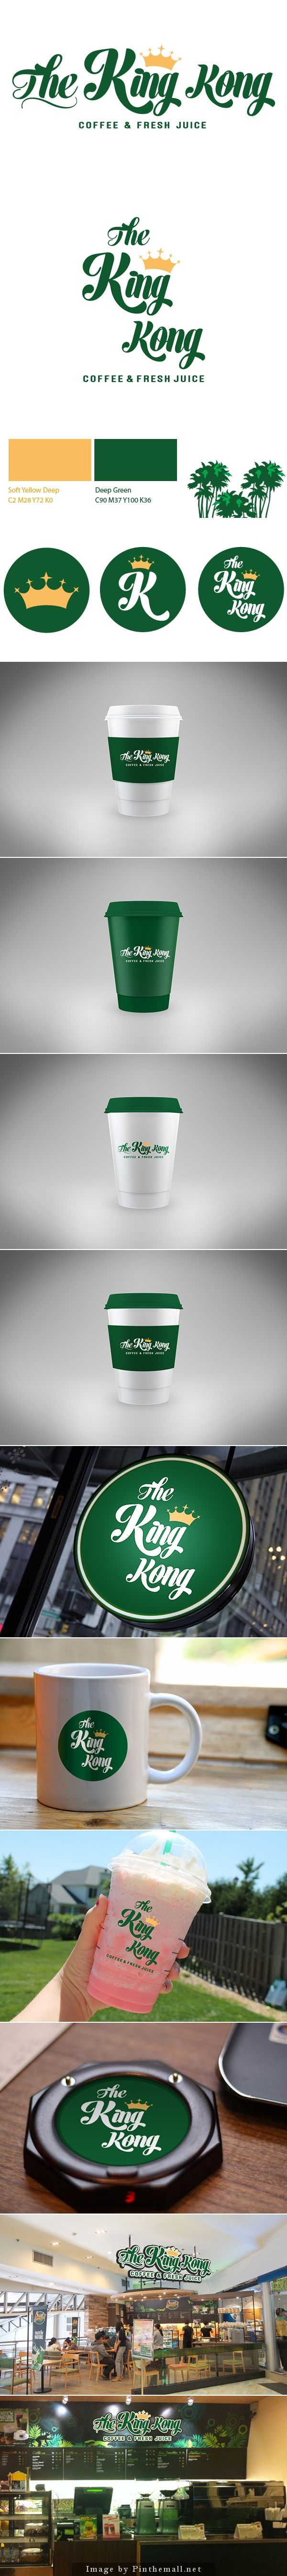 The King Kong | Cafe Branding by Suhwa Hwang